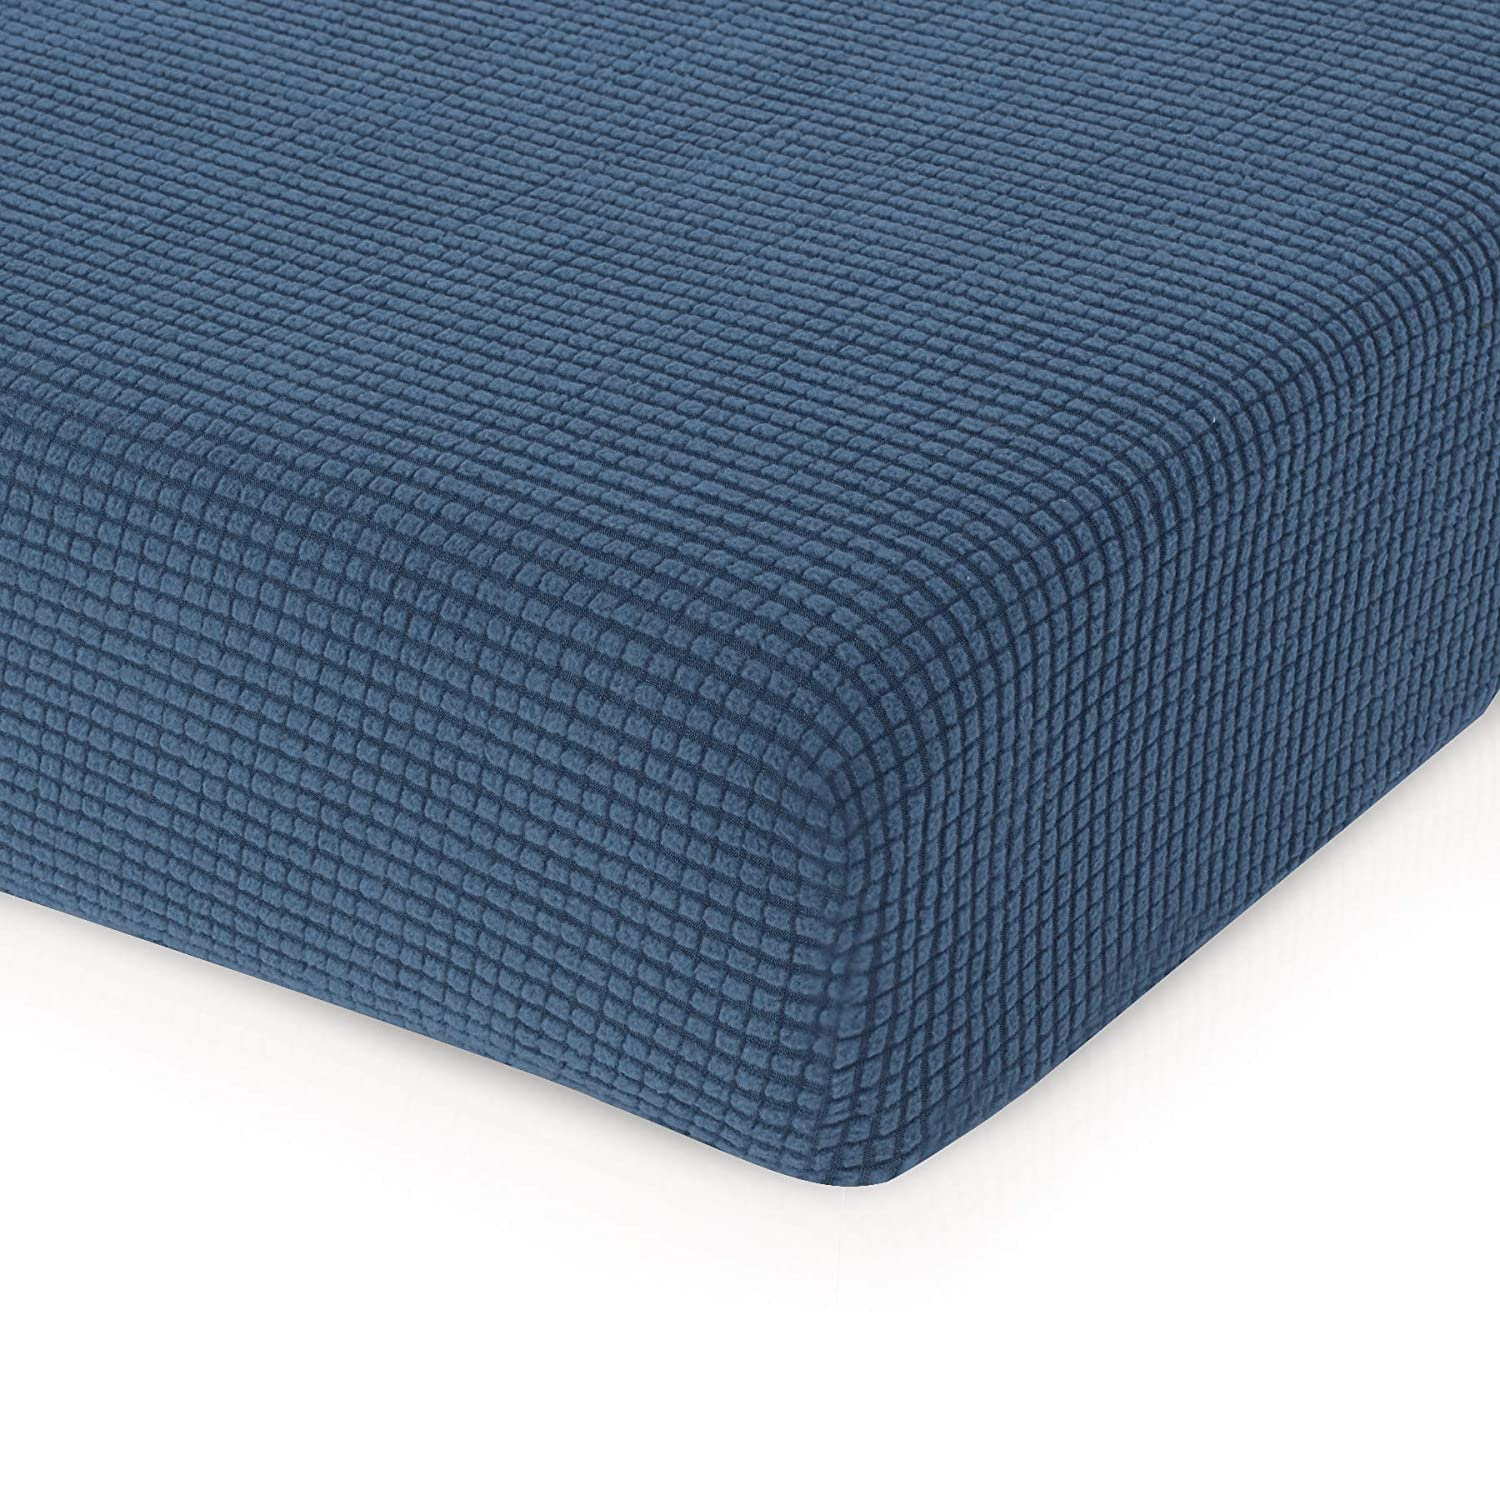 CHUN YI Jacquard Cushion Covers High Stretch Slipcover Furniture Protector for Sofa and Couch Seat (Chair Cushion, Denim Blue)